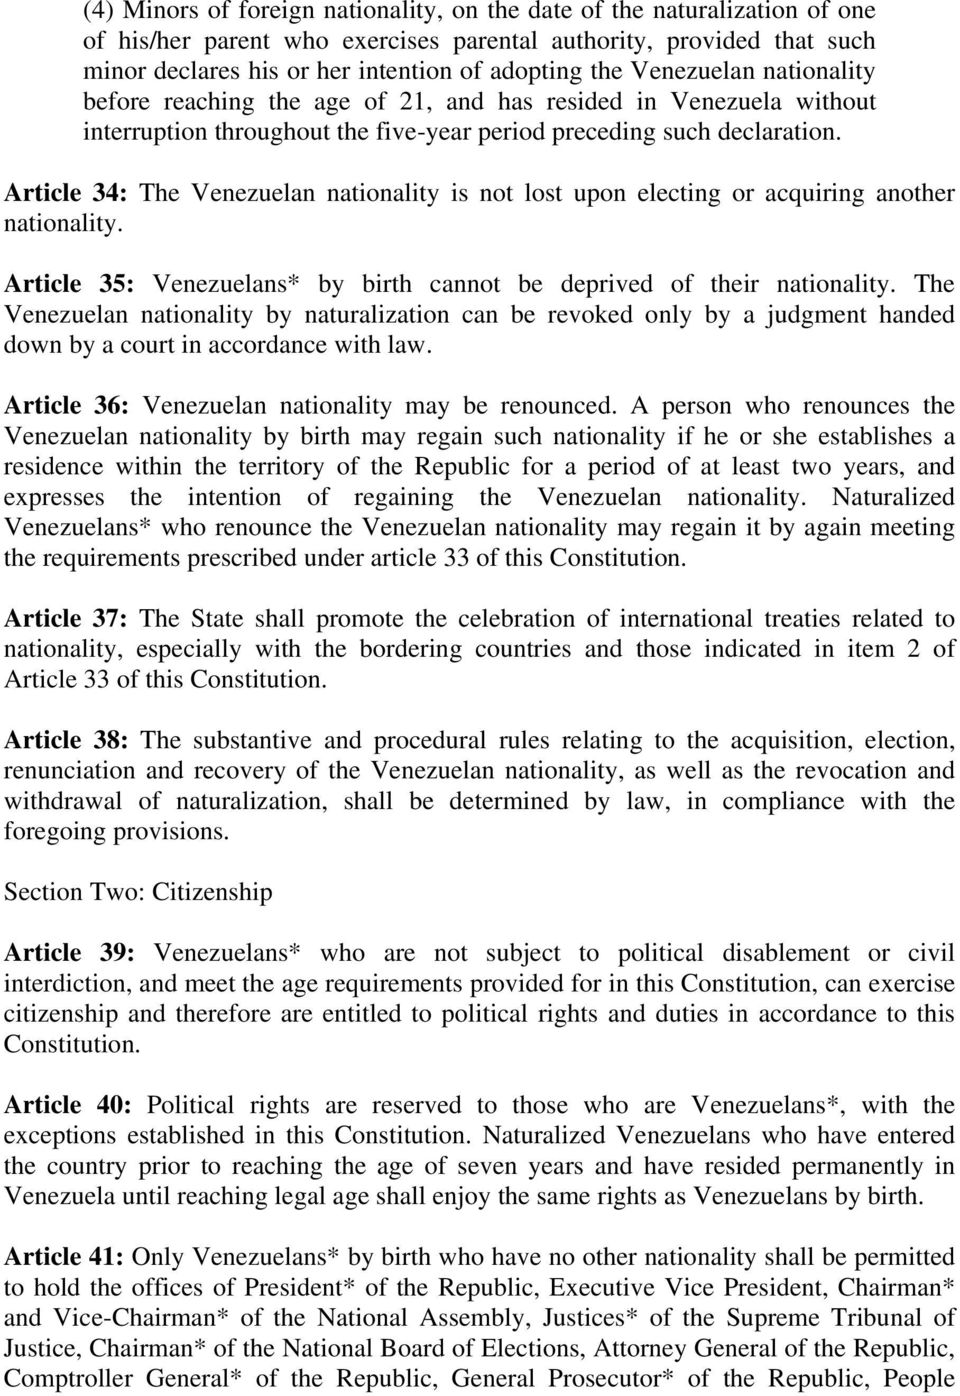 Article 34: The Venezuelan nationality is not lost upon electing or acquiring another nationality. Article 35: Venezuelans* by birth cannot be deprived of their nationality.